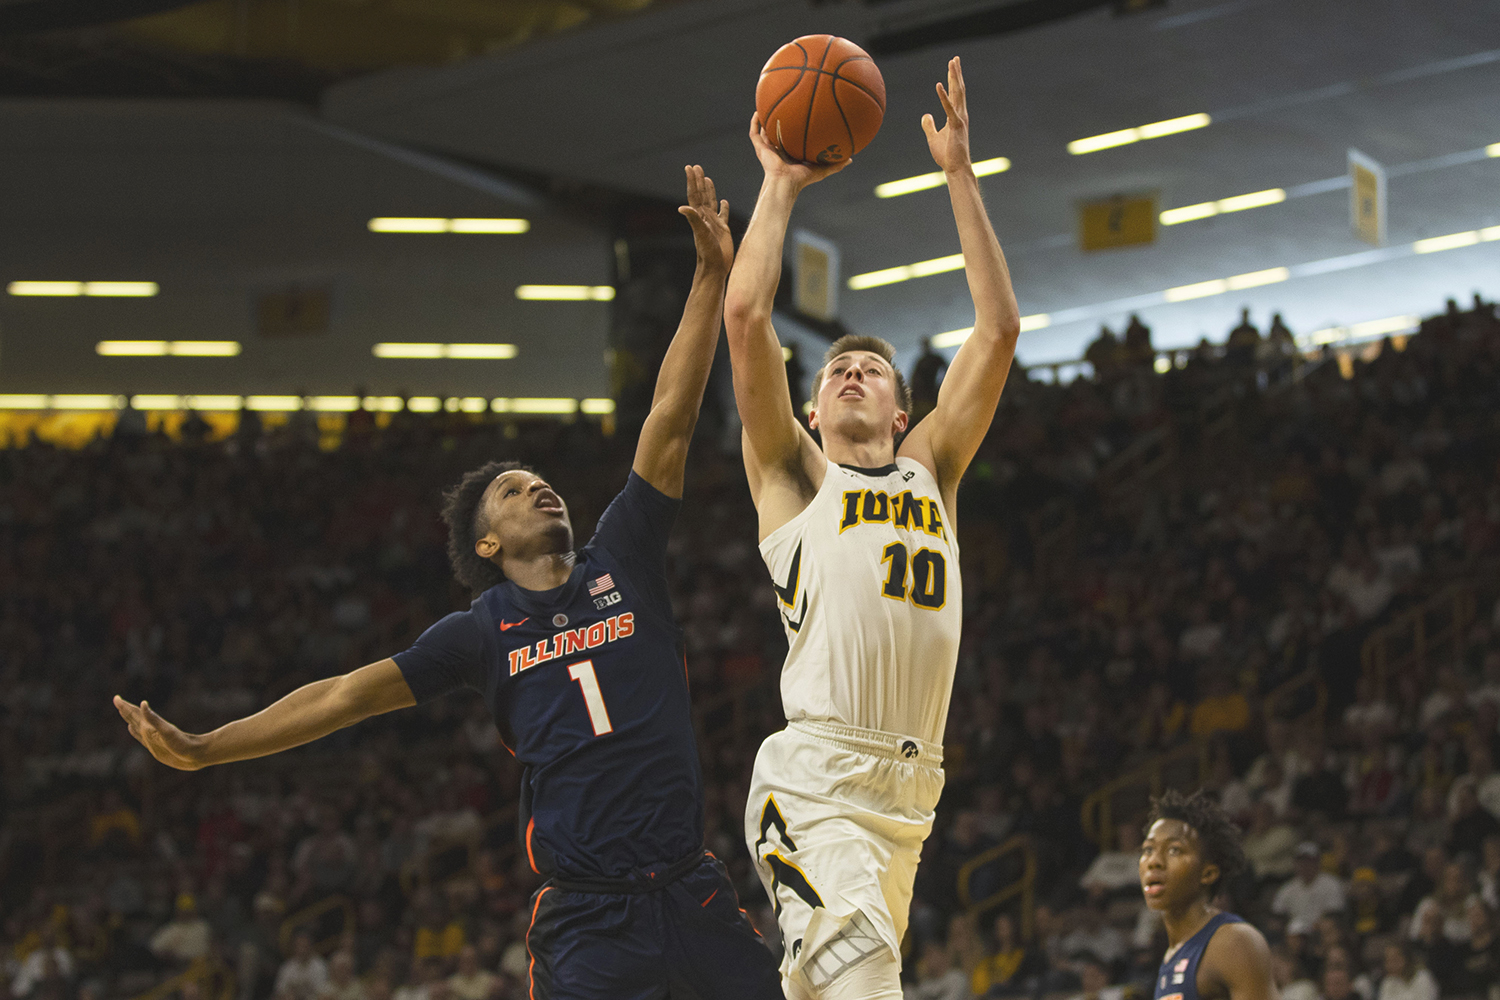 Iowa guard Joe Wieskamp attempts a shot during the Iowa/Illinois men's basketball game at Carver-Hawkeye Arena on Sunday, January 20, 2019. The Hawkeyes defeated the Fighting Illini, 95-71. (Lily Smith/The Daily Iowan)